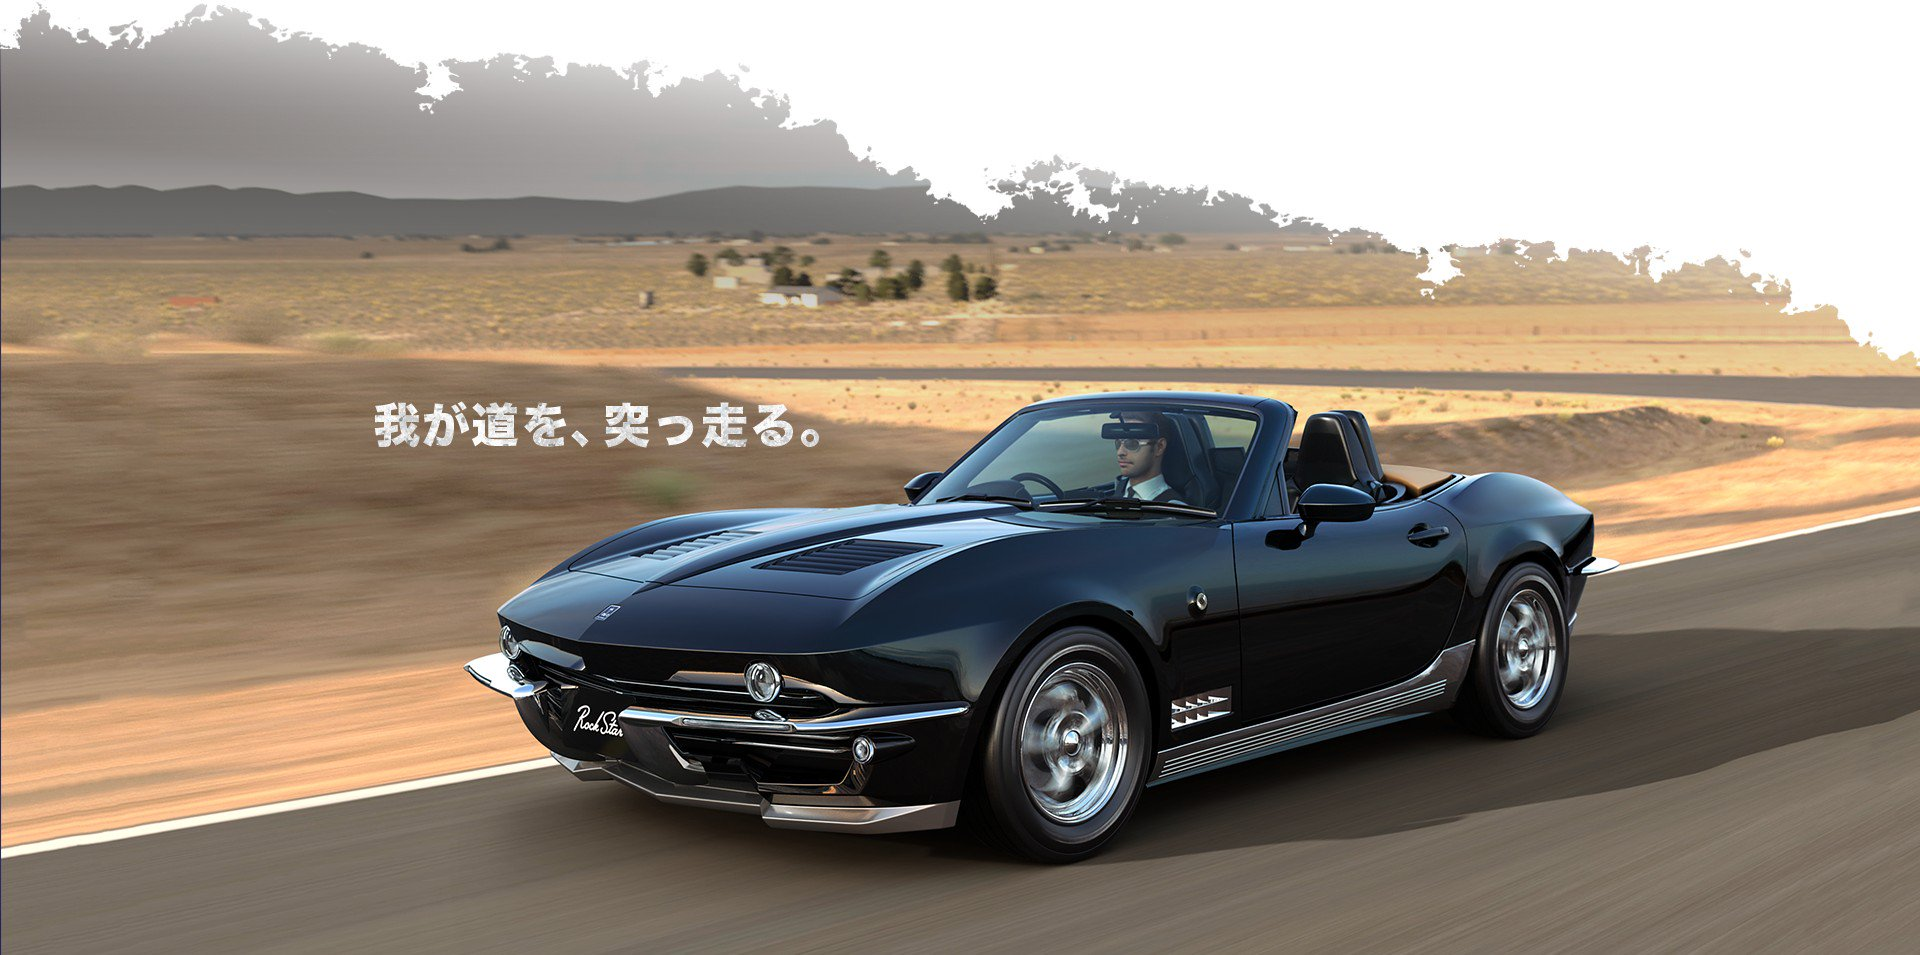 The Mitsuoka Rock Star uses the Mazda MX-5 as base but it clearly styled after the Chevrolet Corvette Mk2